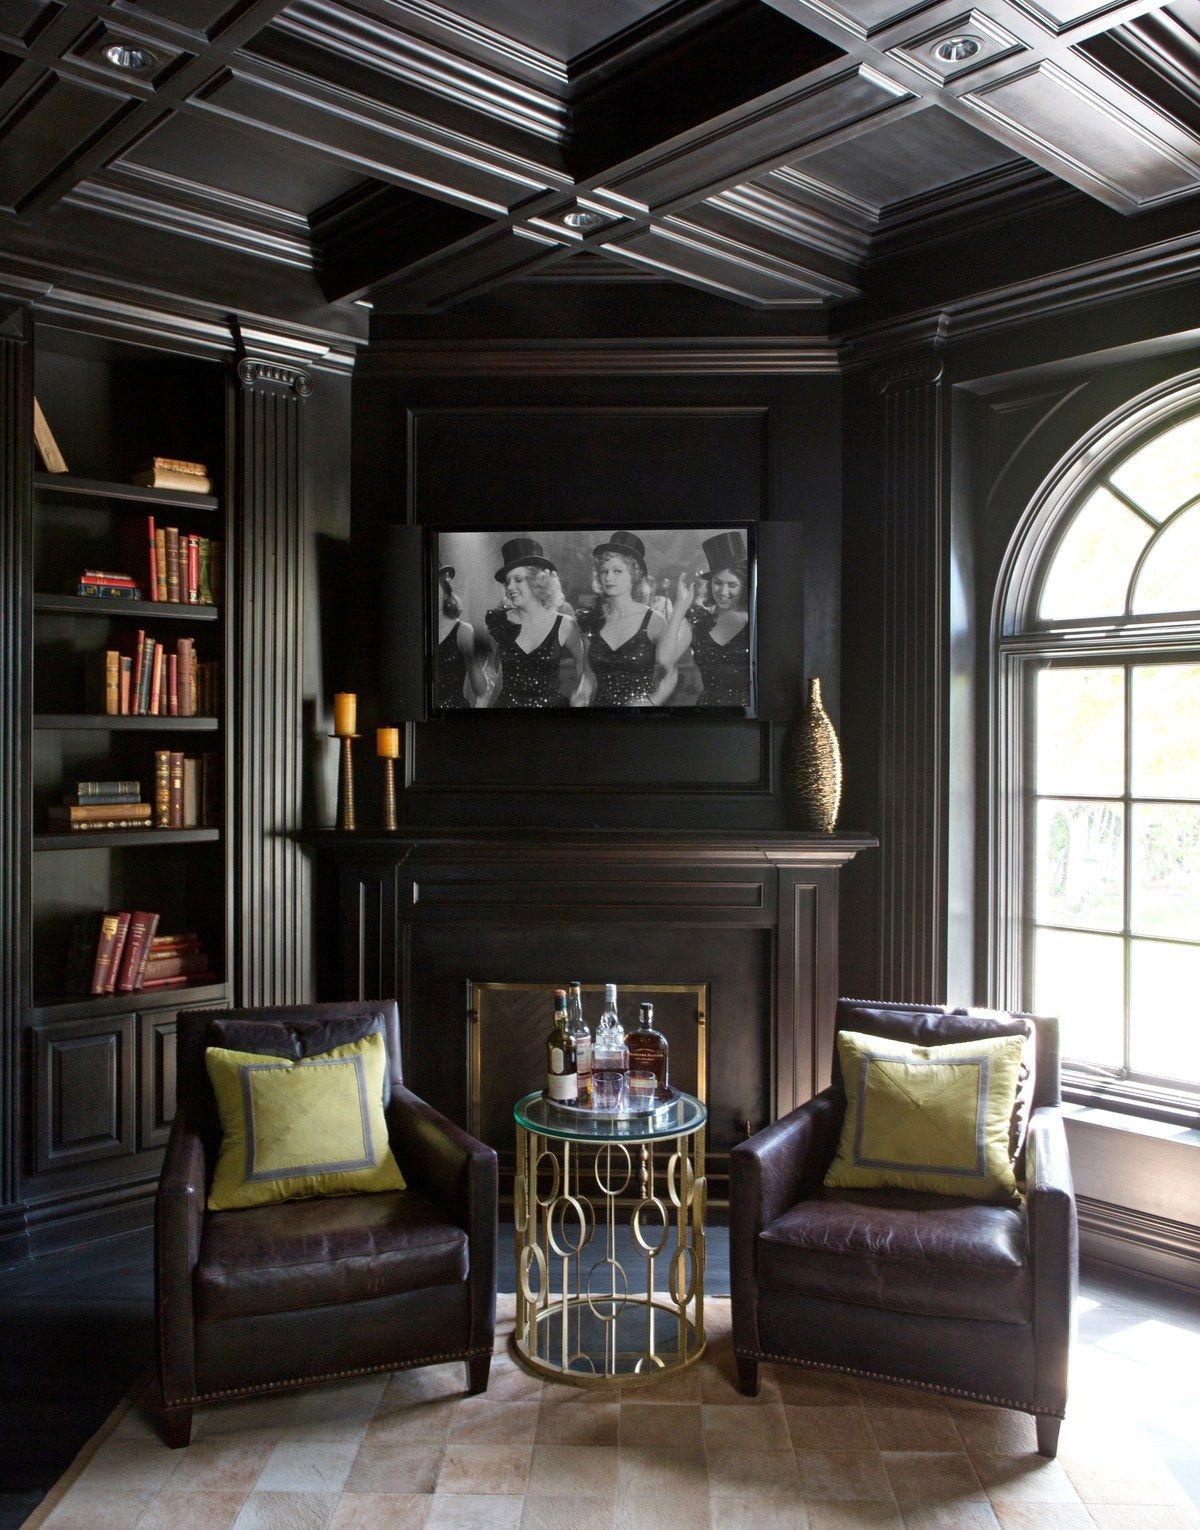 Dark Wood Paneling Hd Ercup Leather Chairs And A Hide Rug By Rh Give The Office Clubby Feel